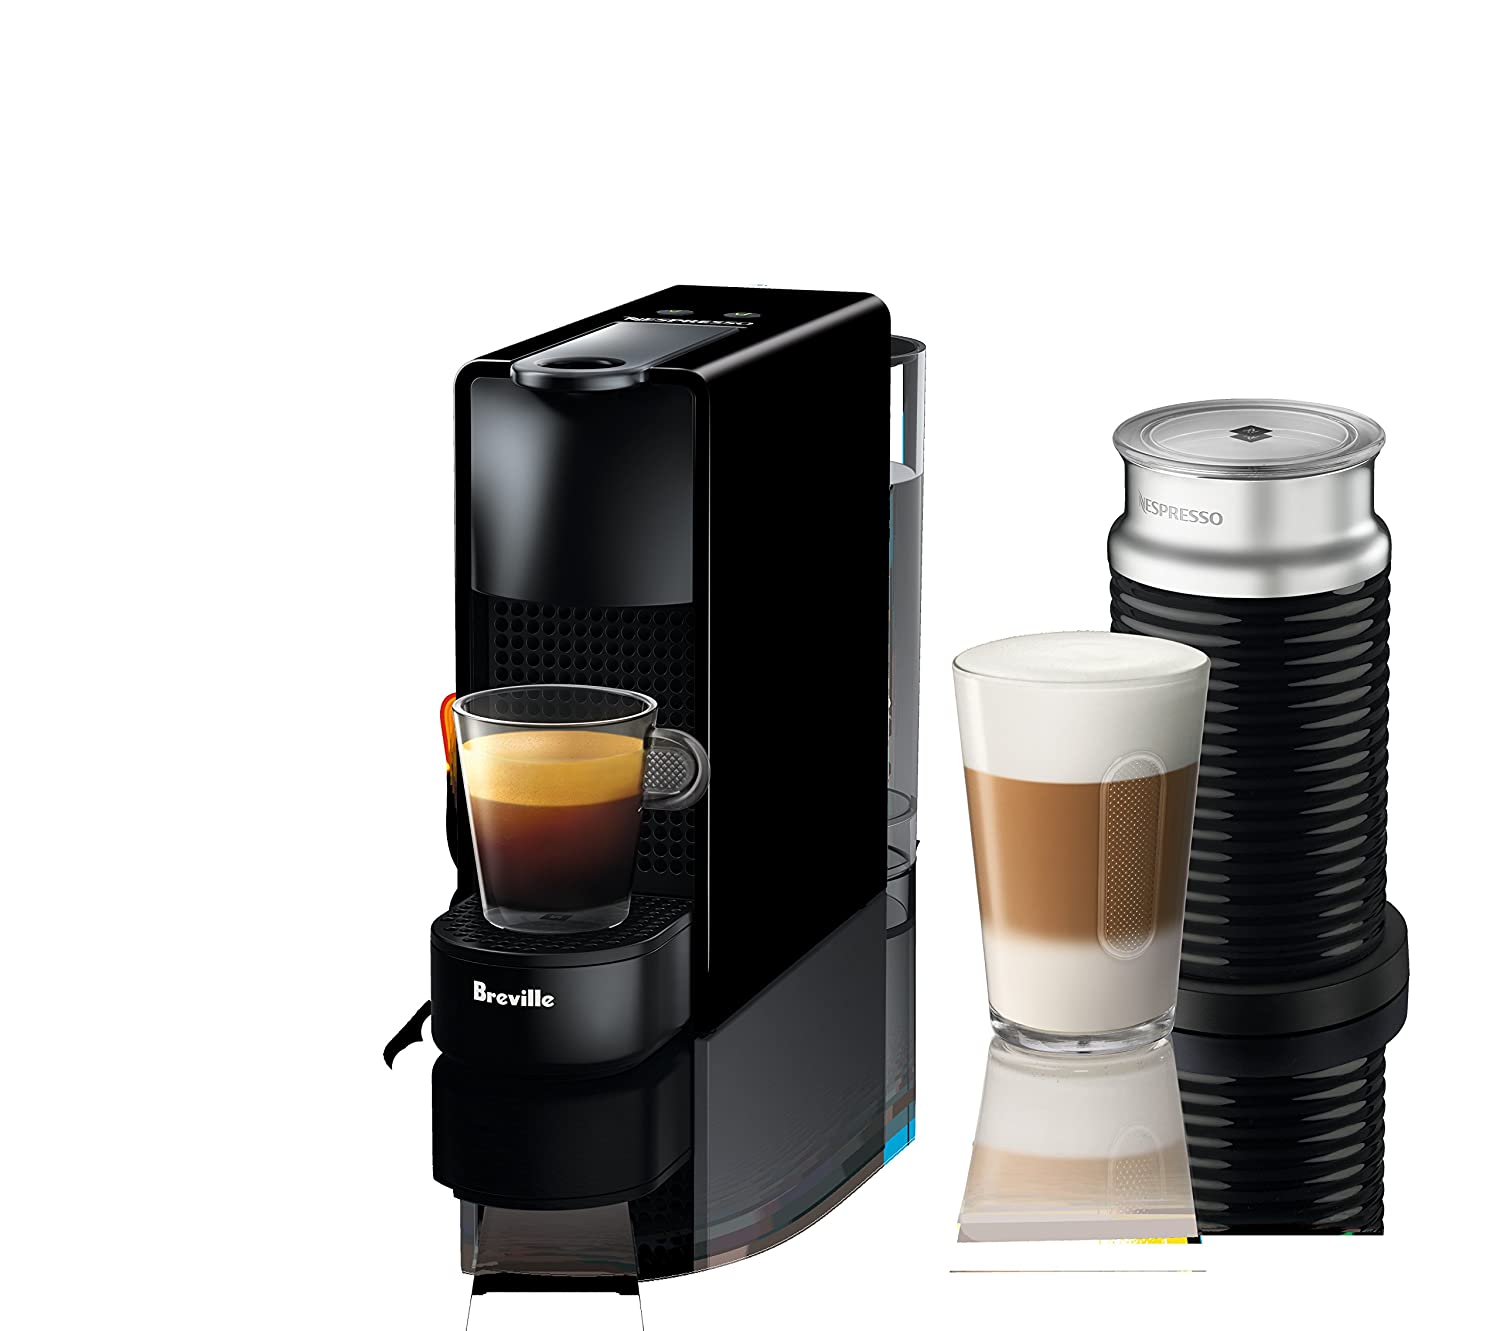 Nespresso Essenza Mini Original Espresso Machine Bundle with Aeroccino Milk Frother by Breville, Piano Black